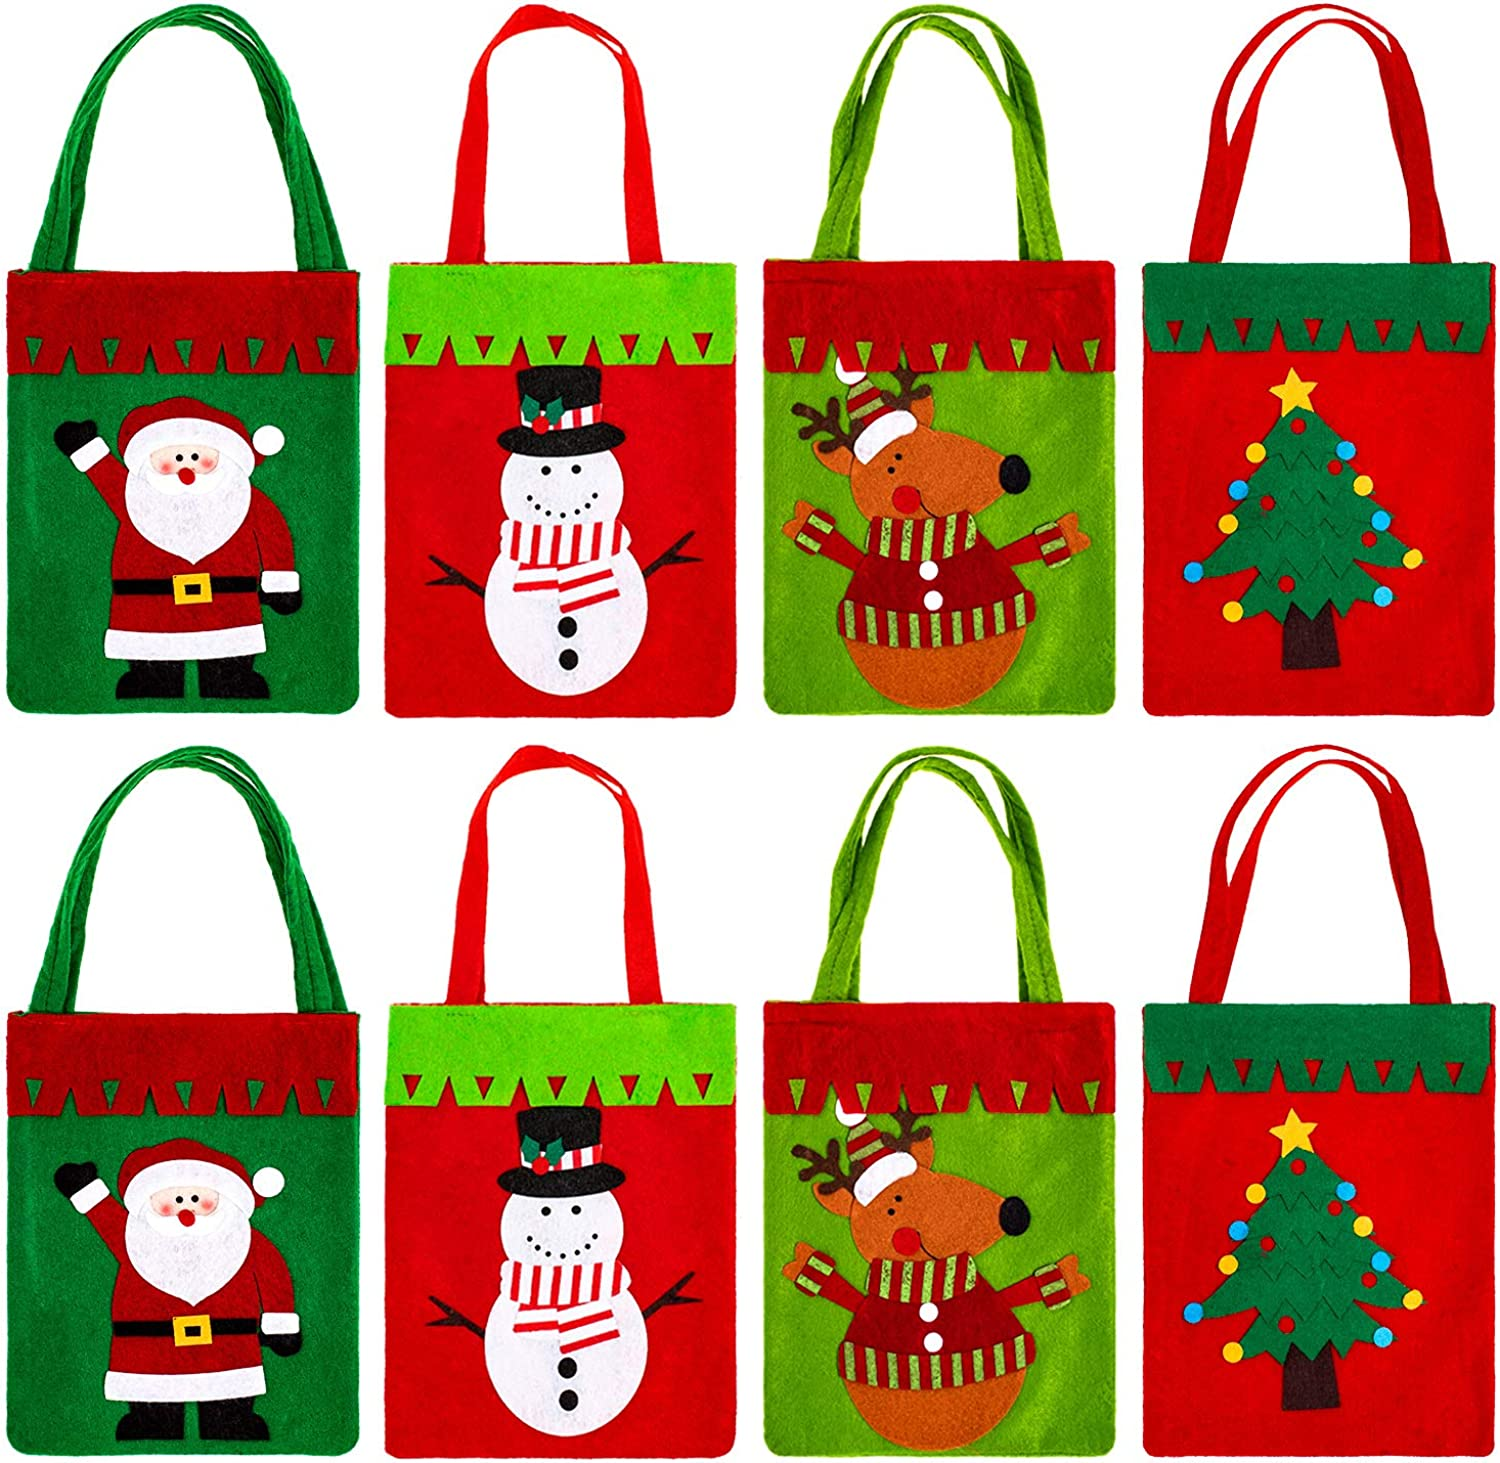 Whaline 8Pcs Christmas Tote Gift Bag,Reusable Non-Woven Thickened Candy Bag,Santa Claus Snowmen Christmas Tree Reindeer Design Shopping Bags with Long Loop Handles for Christmas Party Favor(Red,Green)